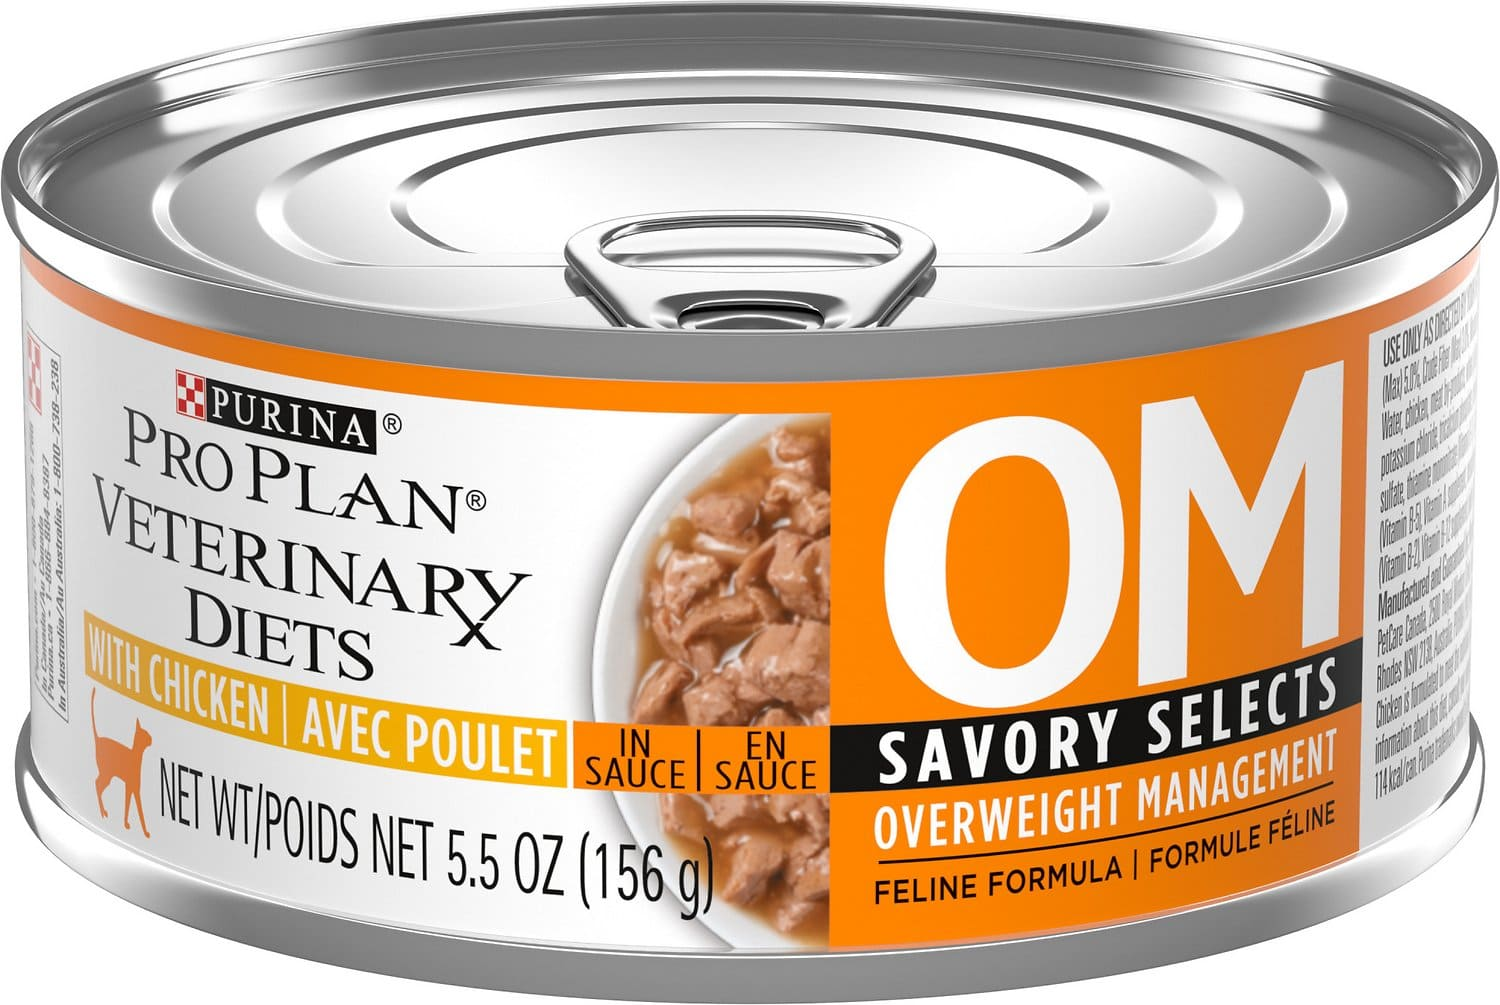 Purina Pro Plan Veterinary Diets OM Overweight Management Savory Selects Canned Formula 24 x 5.5 oz can Chicken 1